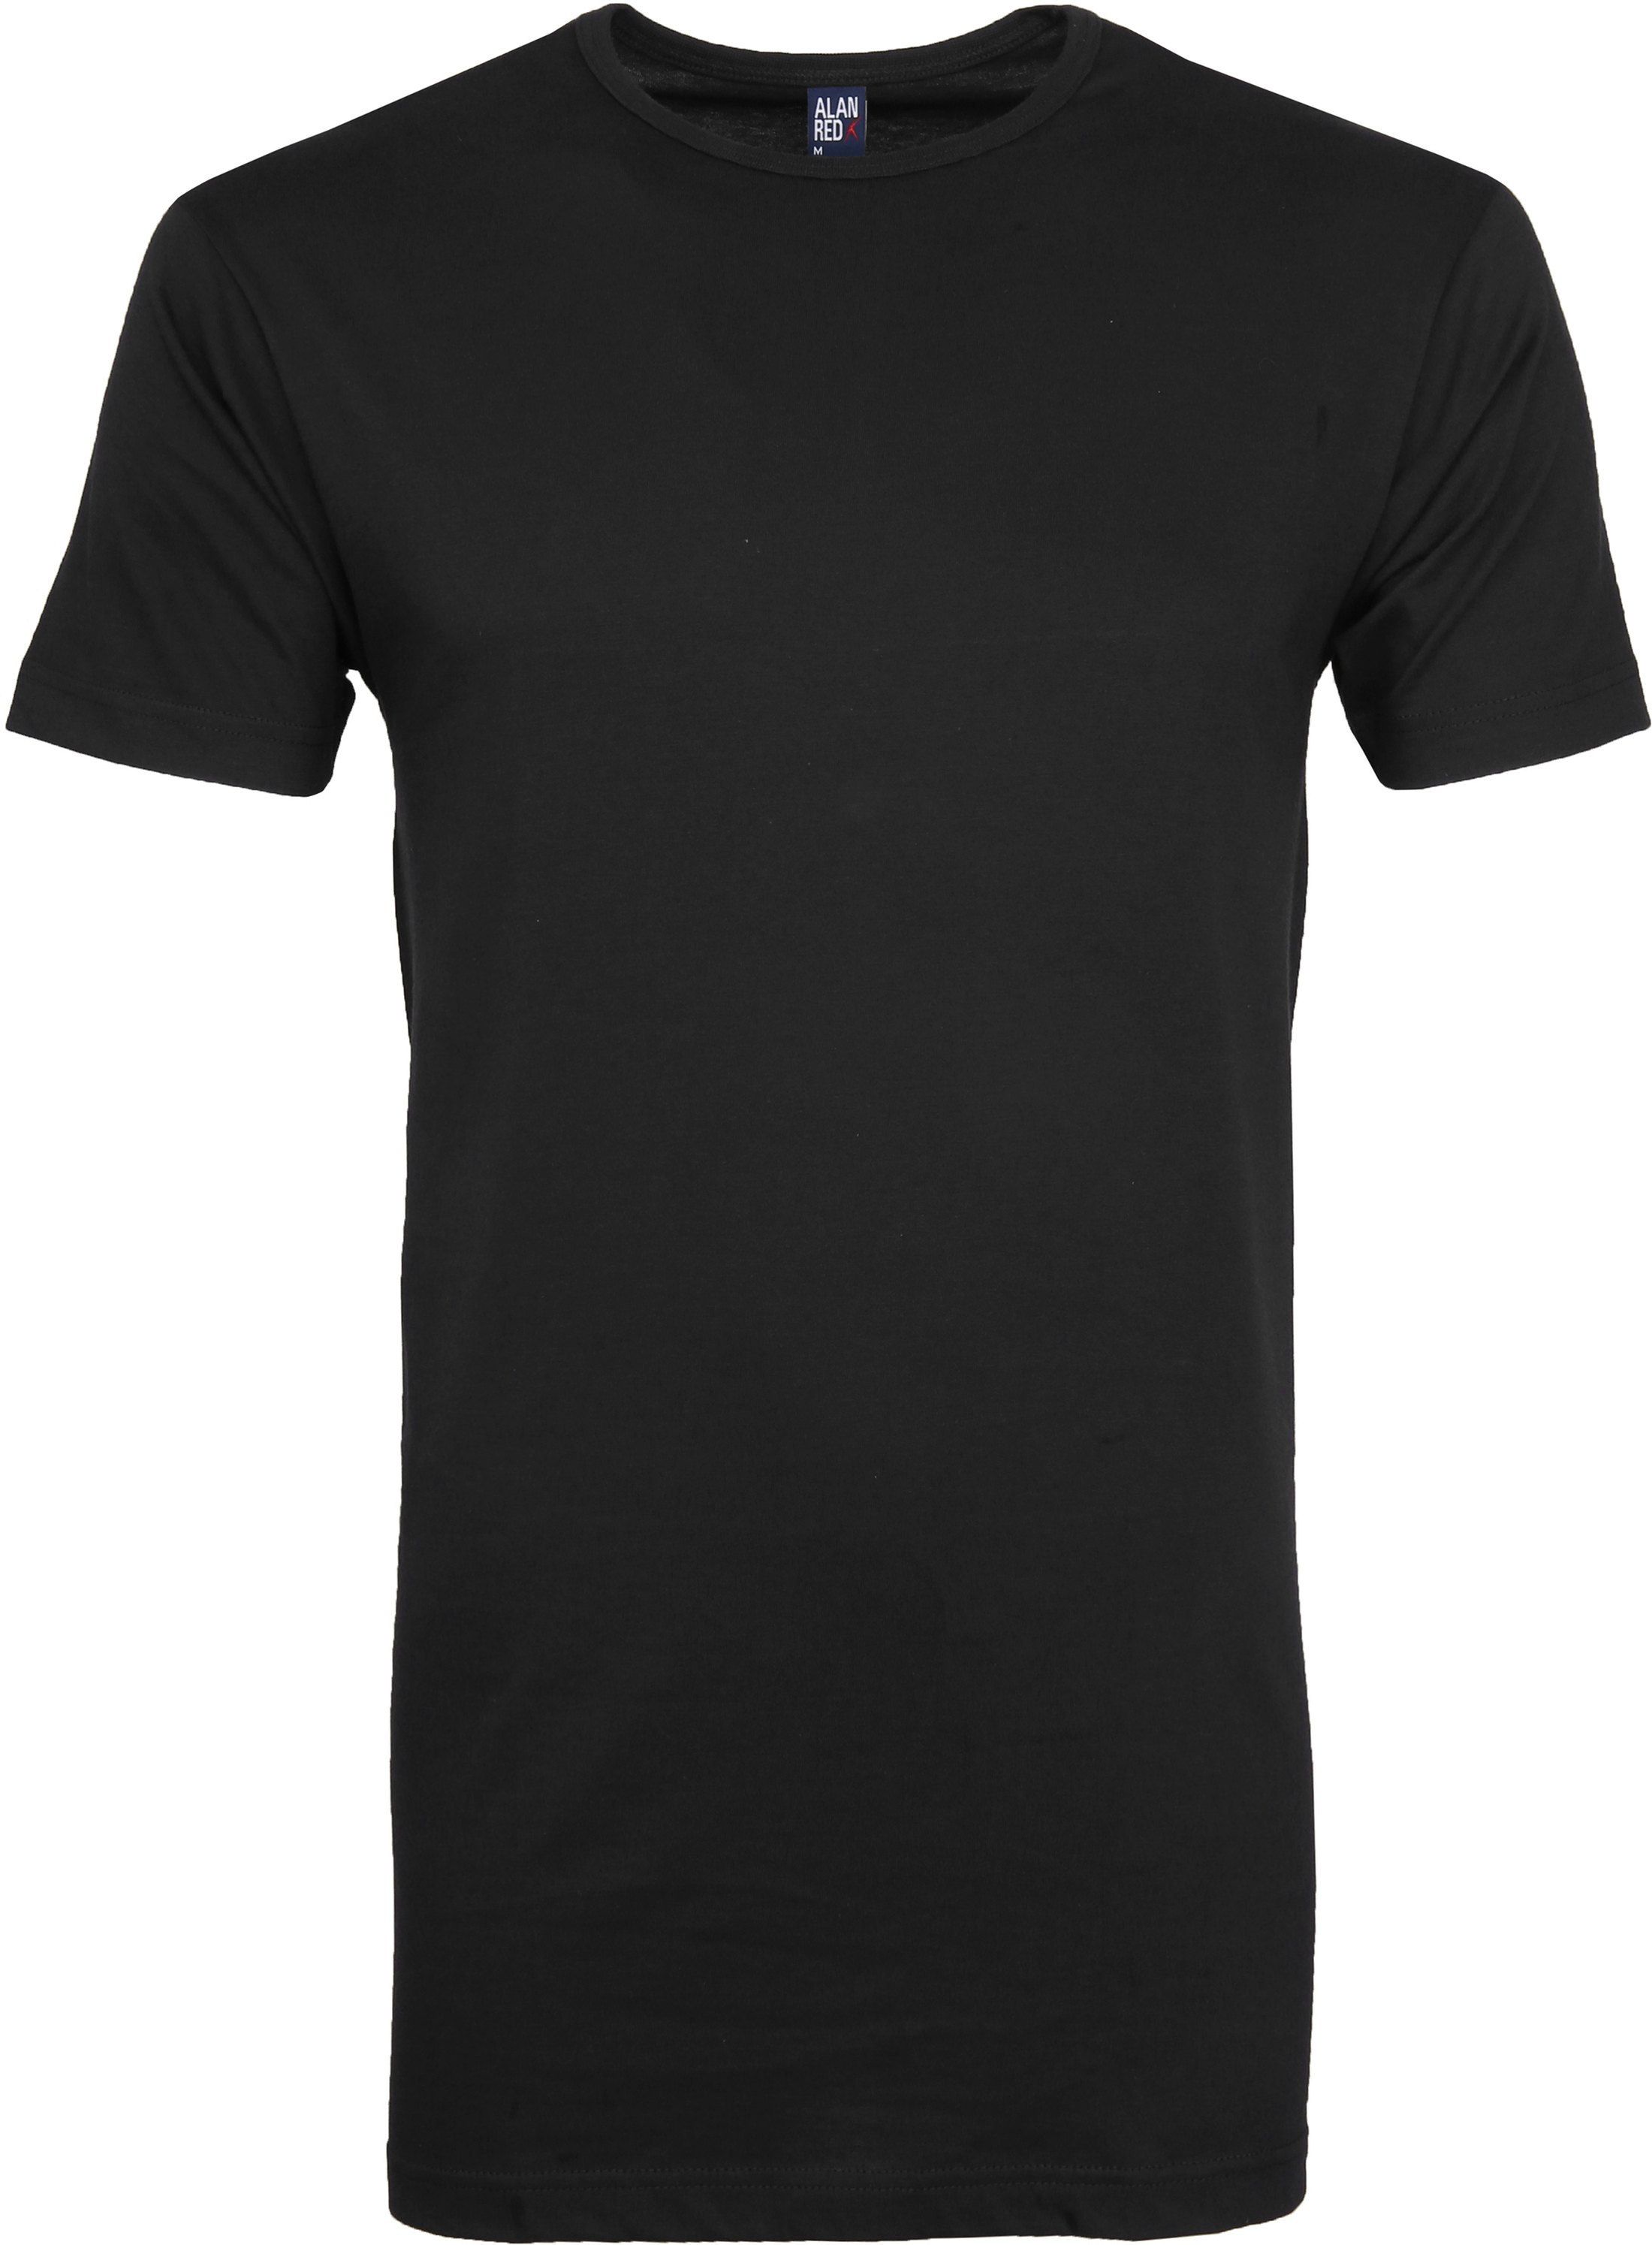 Alan Red Extra Long T-Shirts Derby Black (2-Pack) foto 1